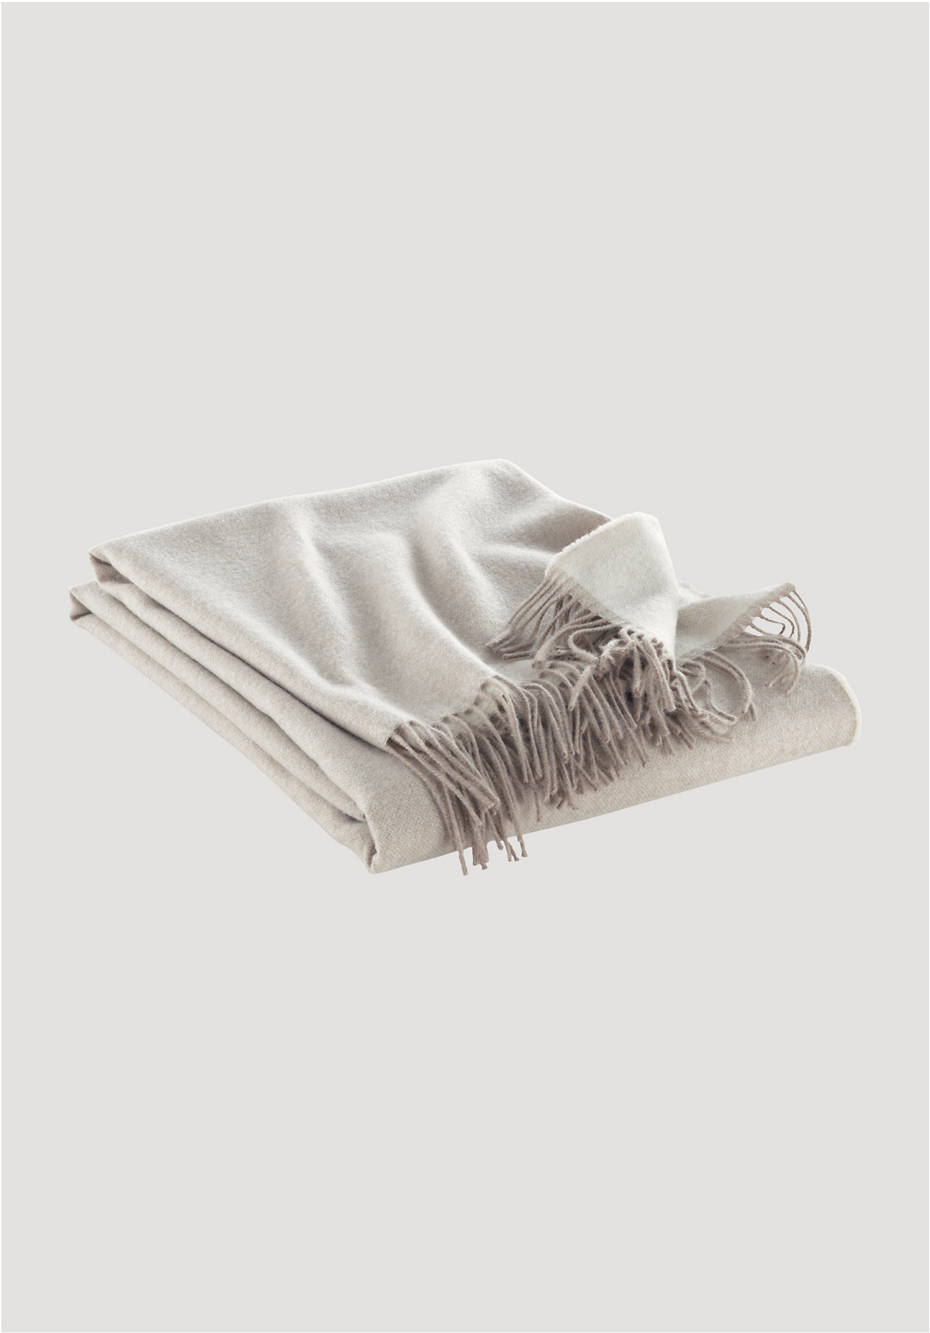 Saas Fee blanket made of cashmere and merino wool